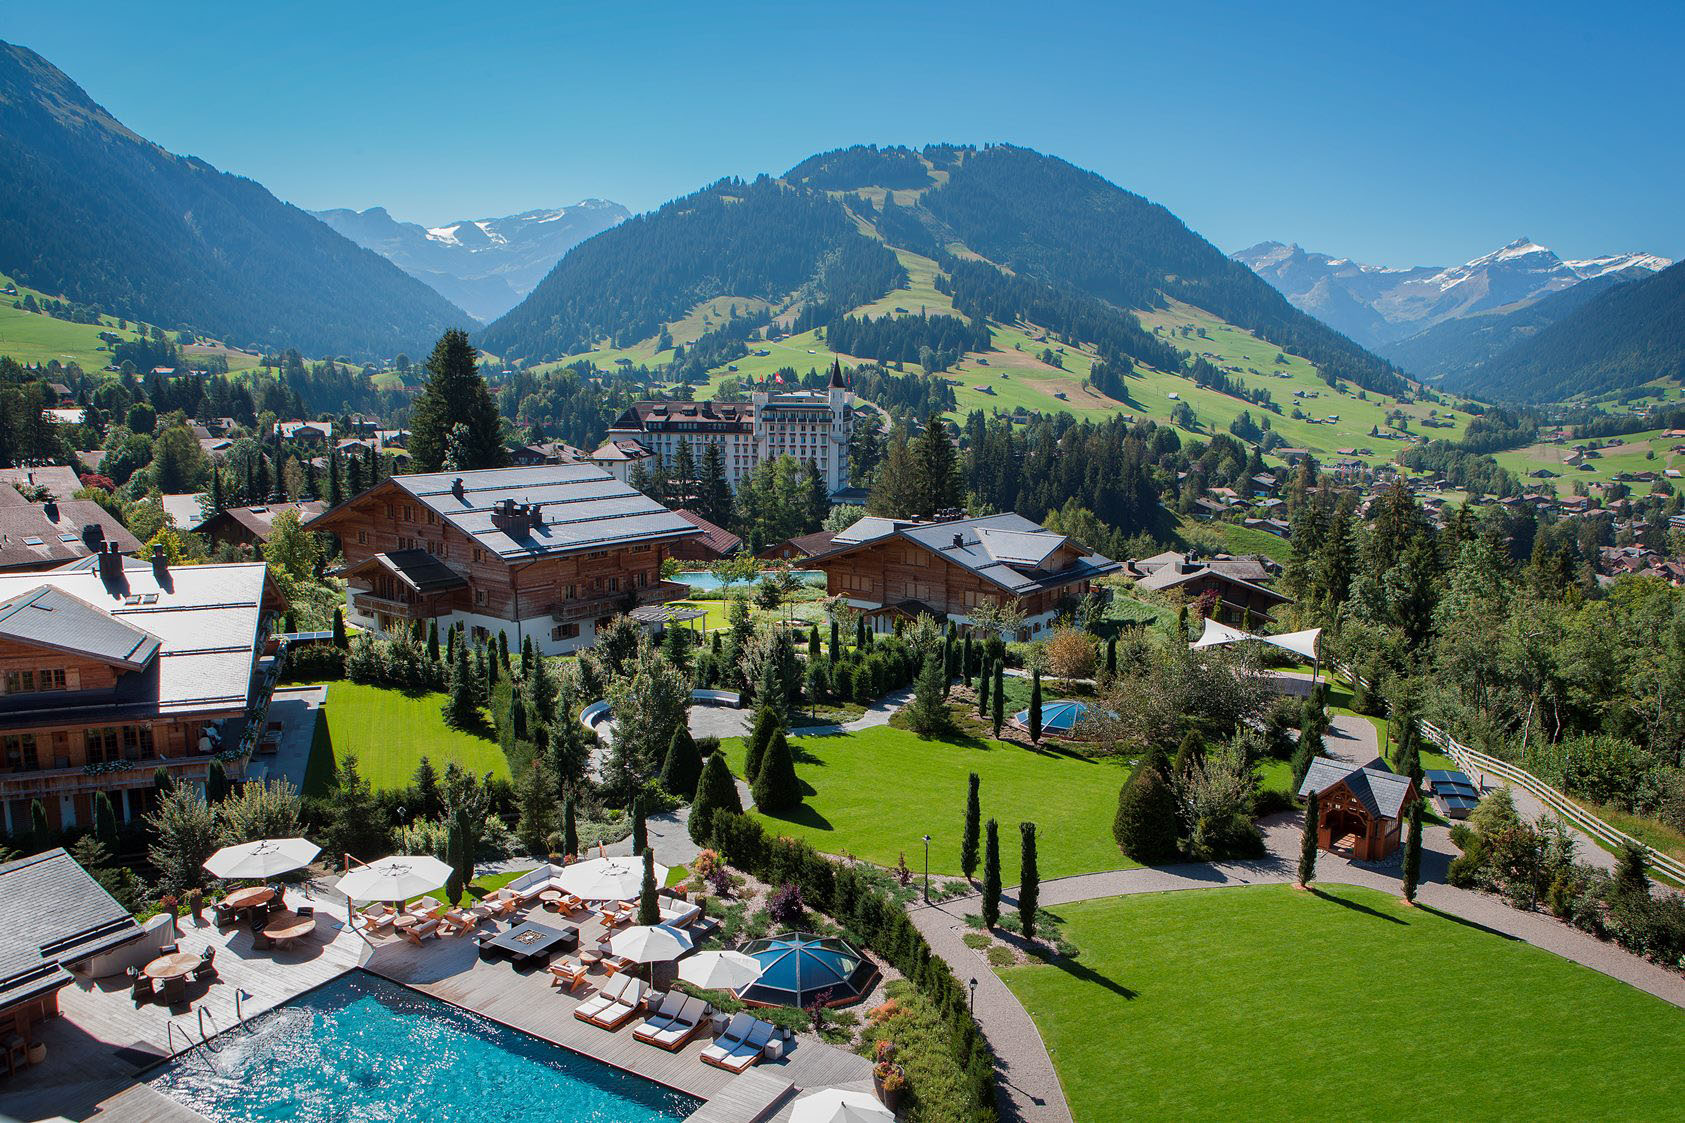 Gstaad Switzerland Alpine Mountain Scenery